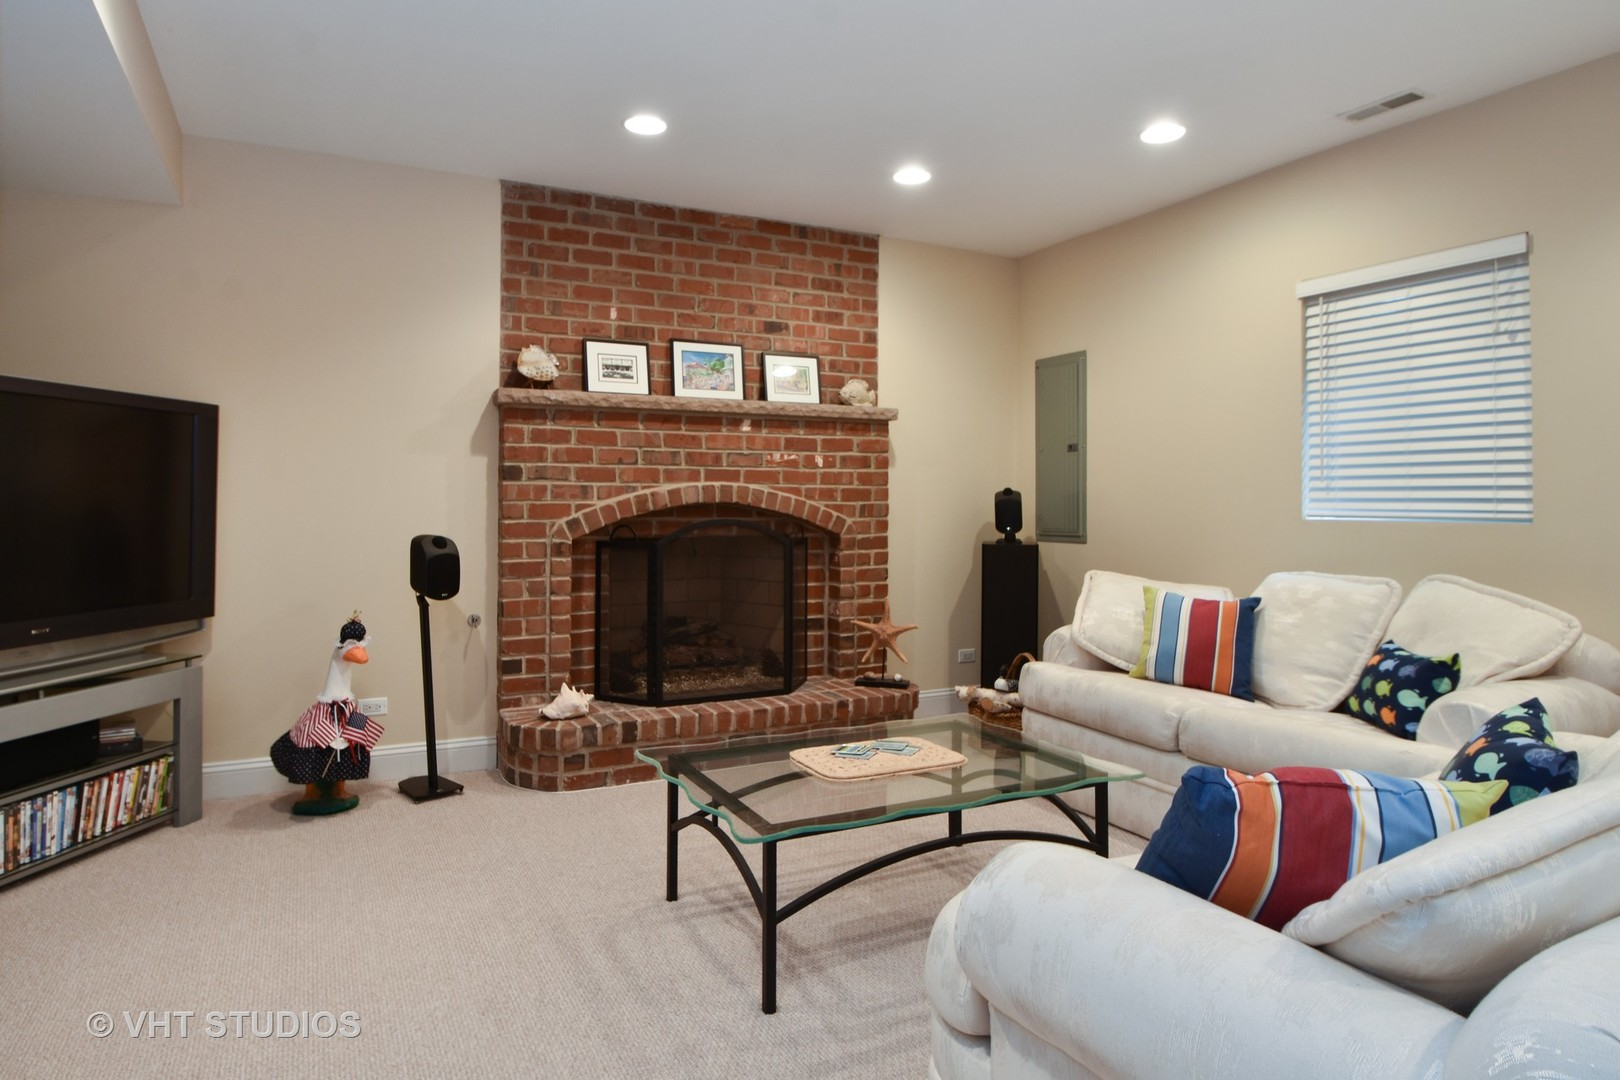 807 South Quincy, Hinsdale, Illinois, 60521